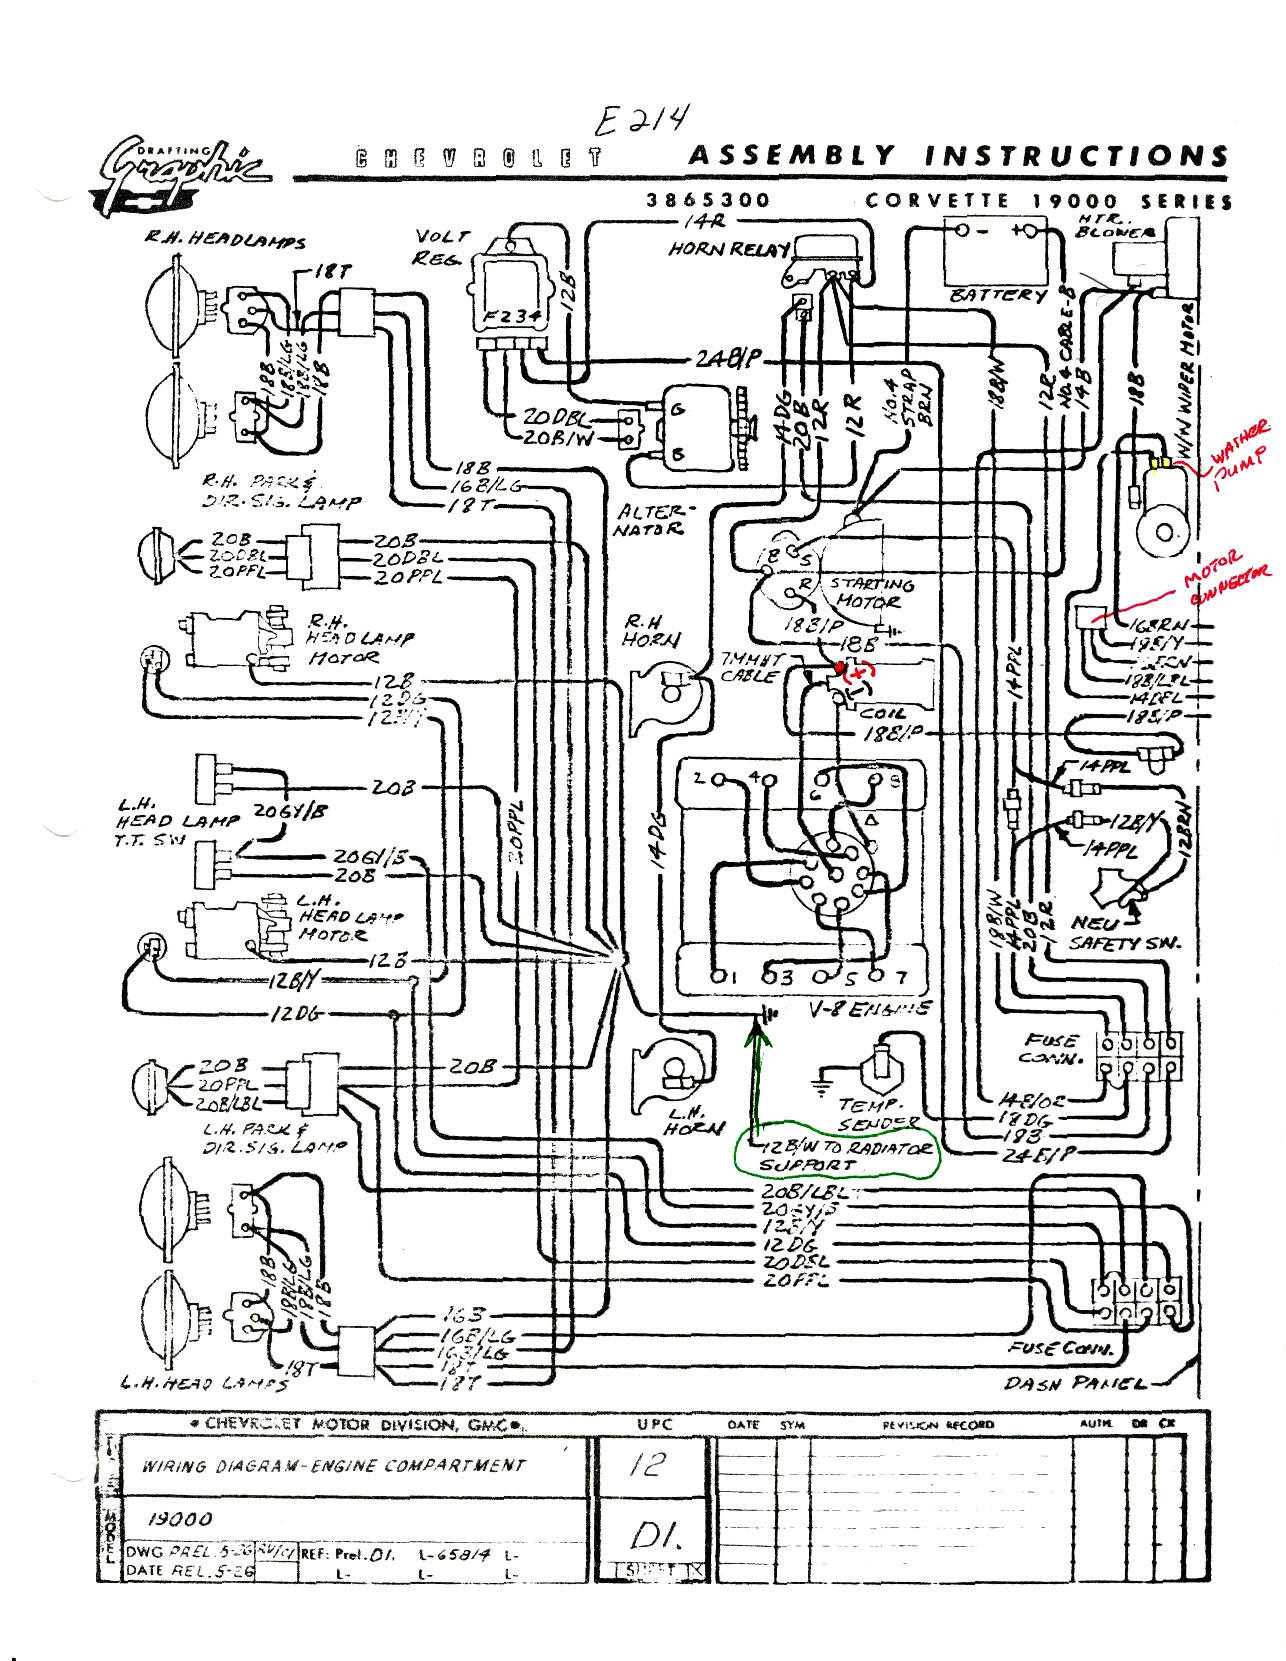 1968 Chevelle Wiring Diagram Chevelle Gauge Wiring Diagram Wiring